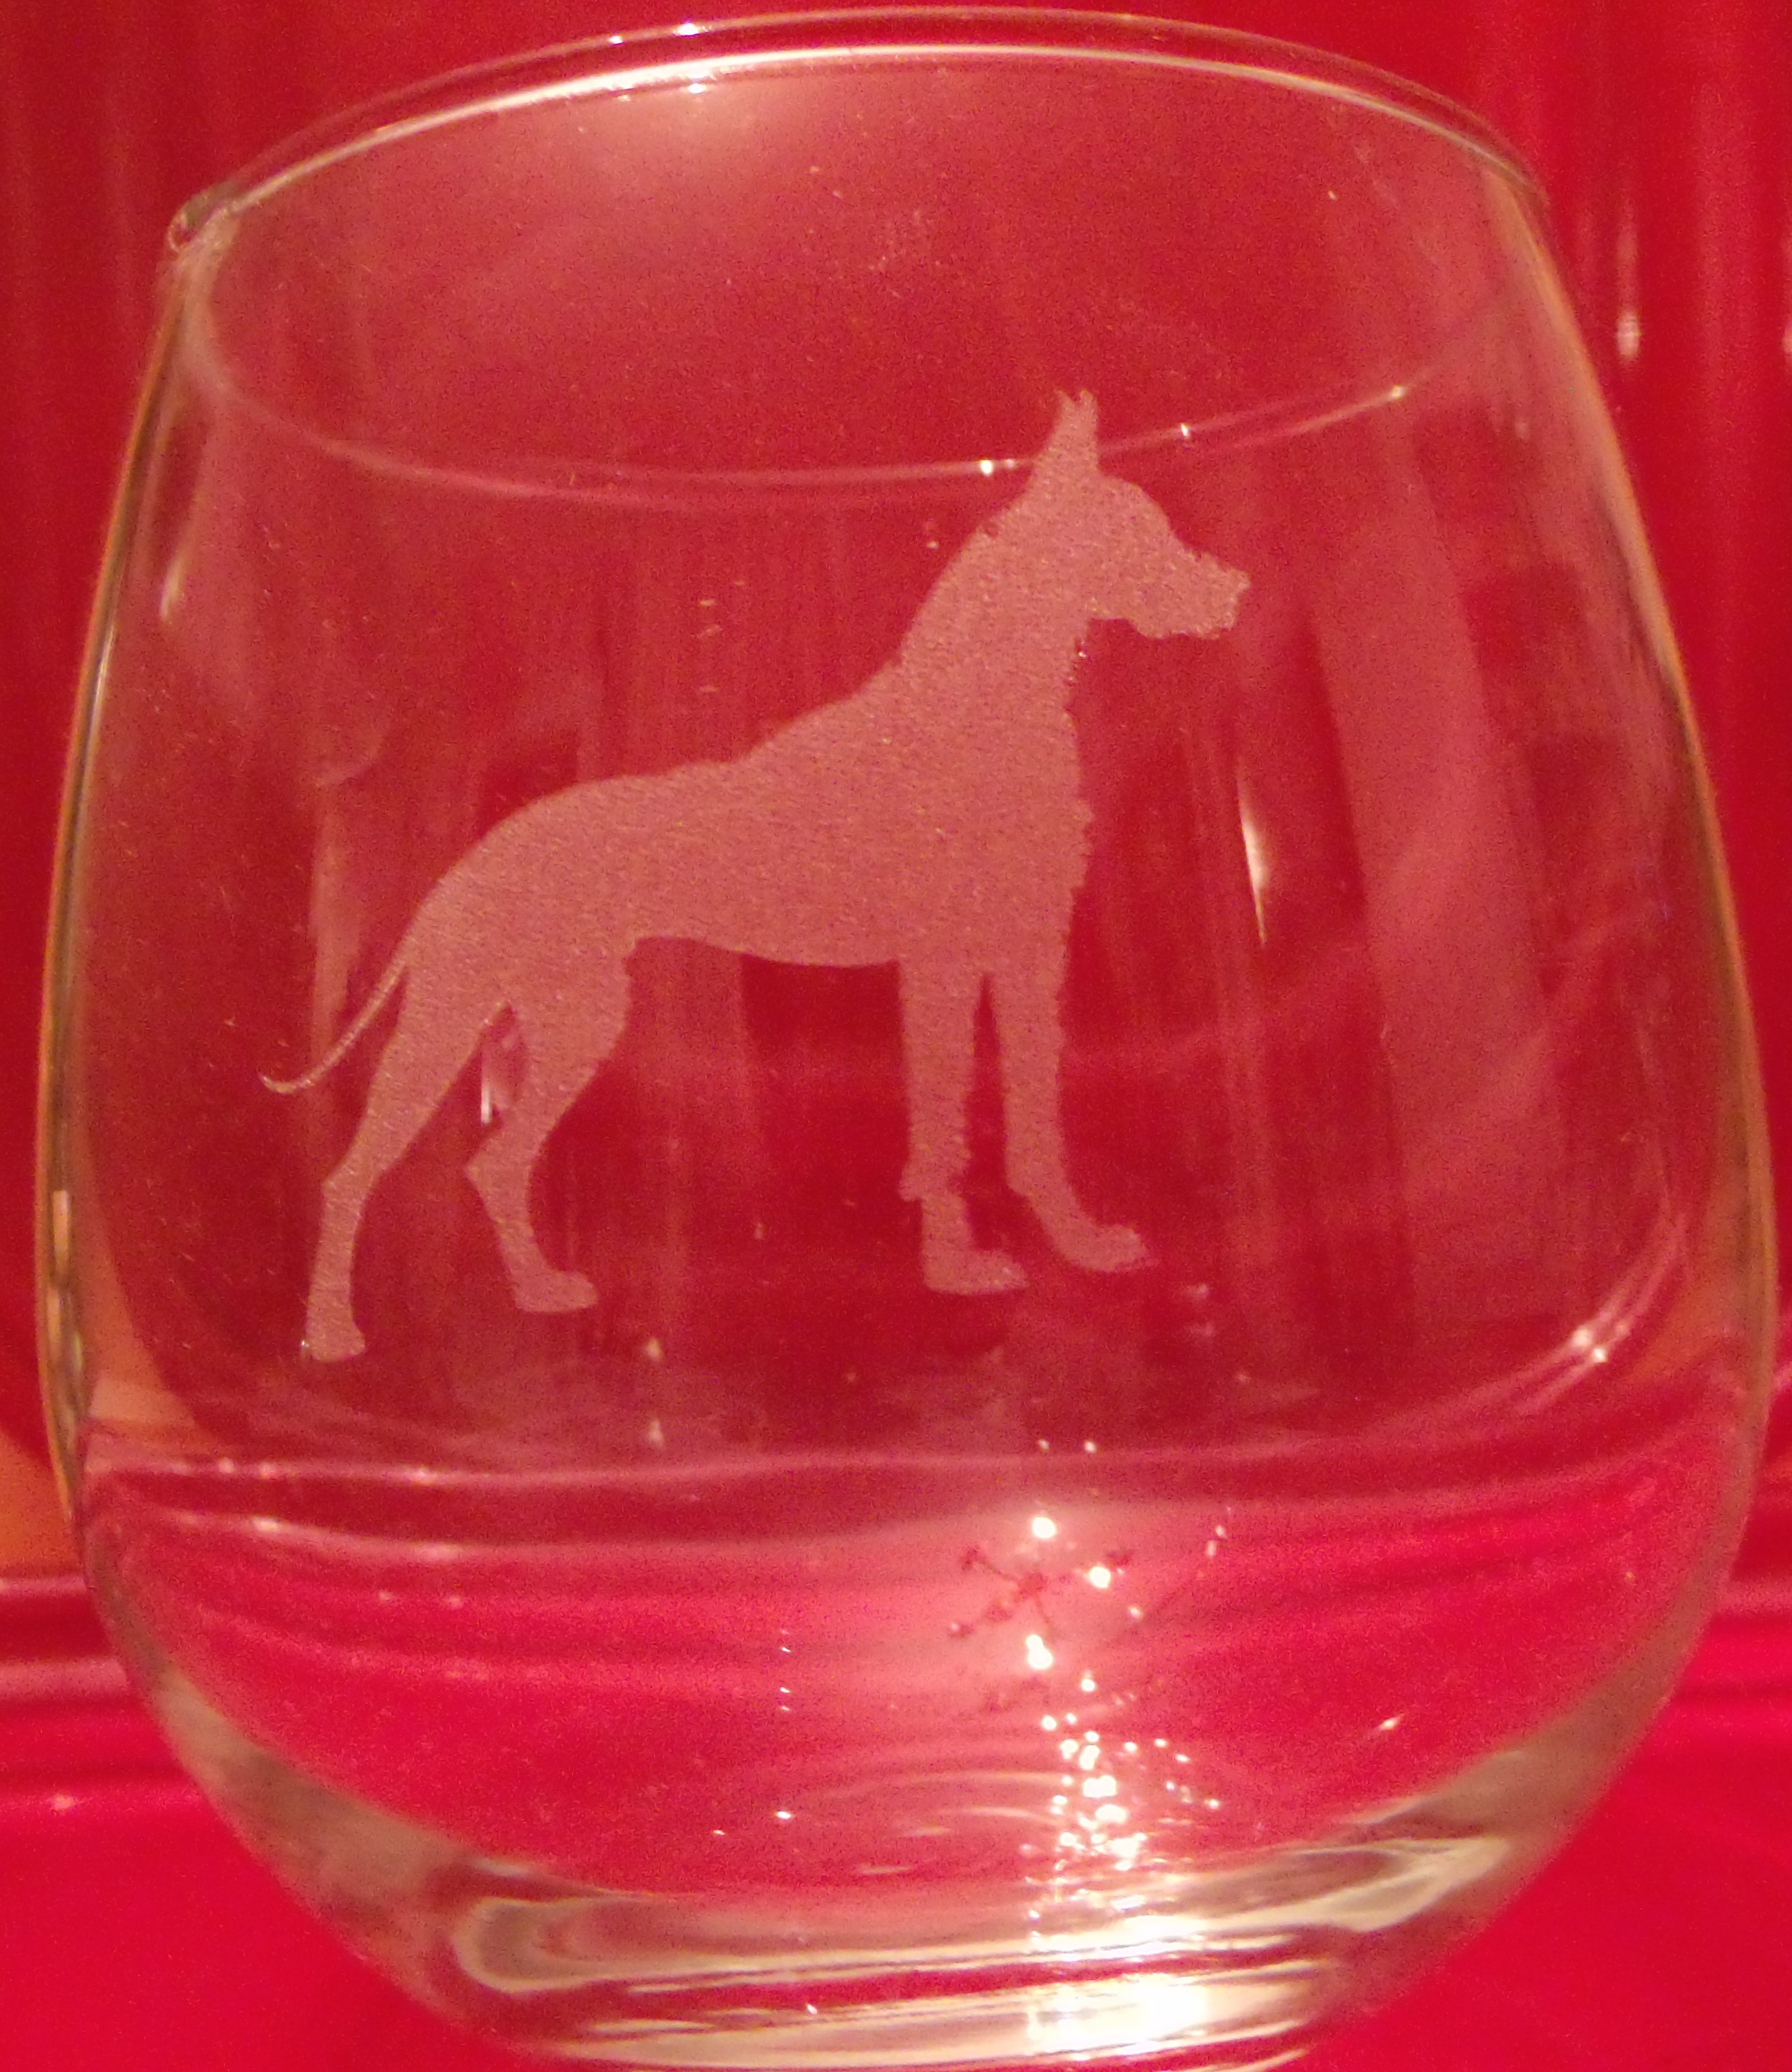 White Wine Glass, 16 oz. cropped ear